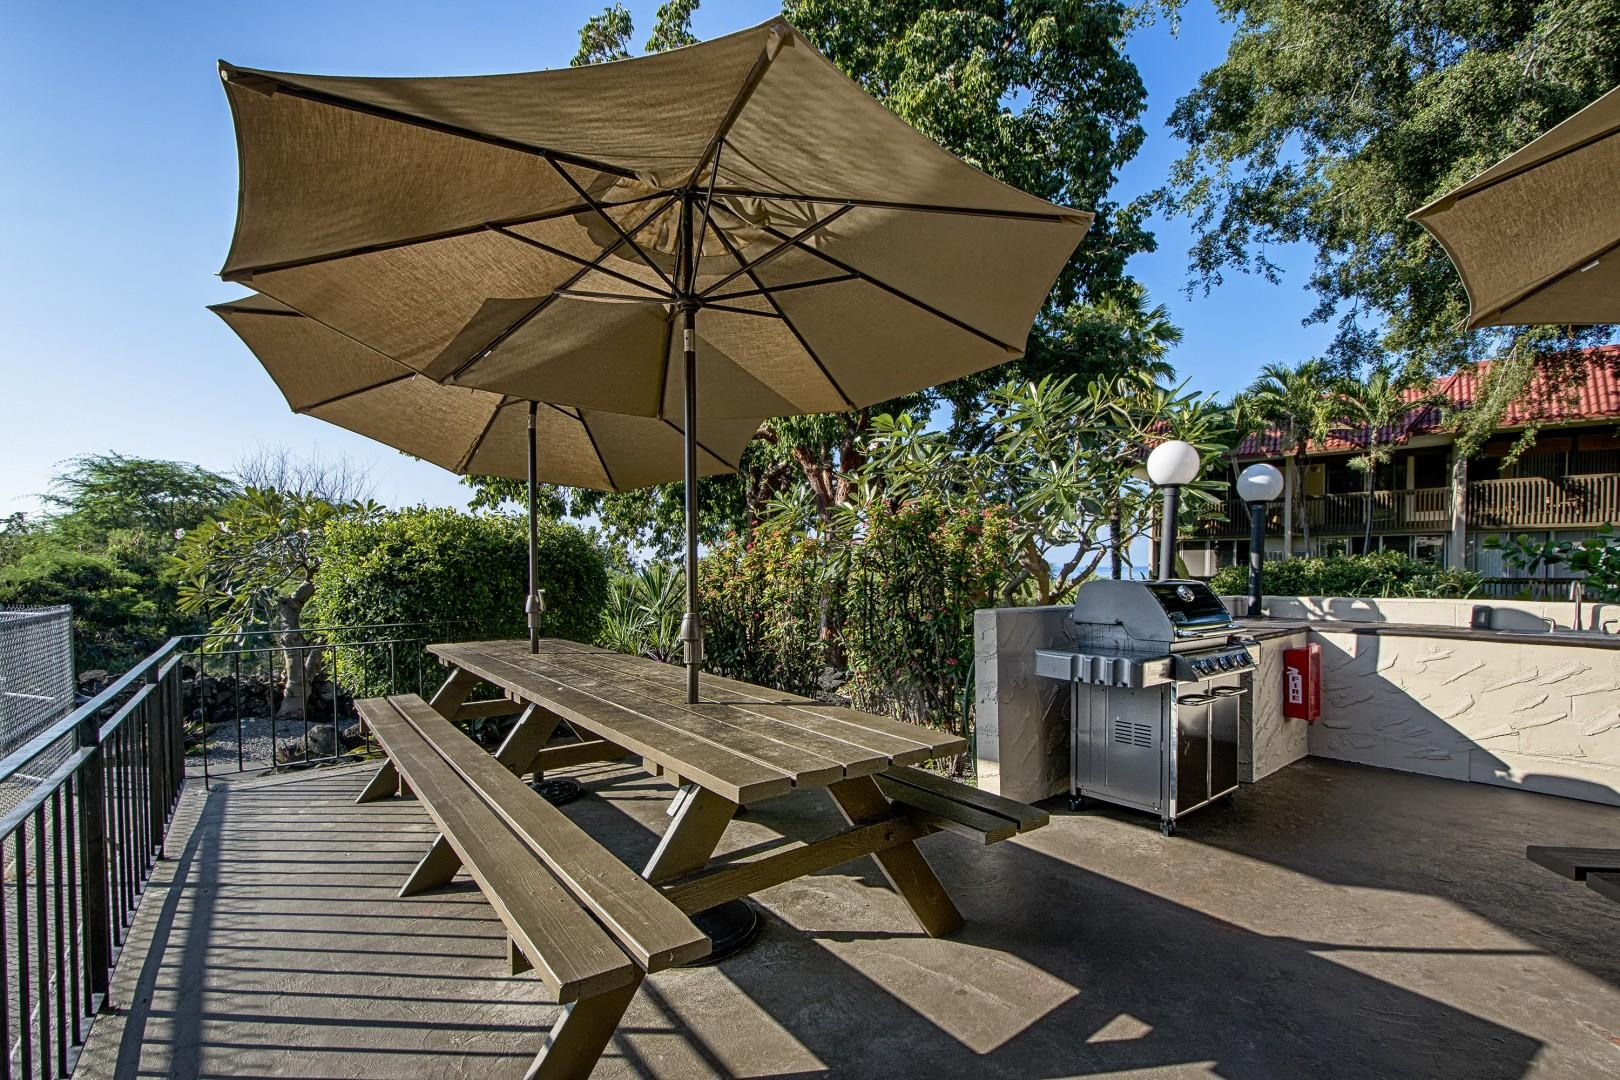 Picnic tables for guests to utilize